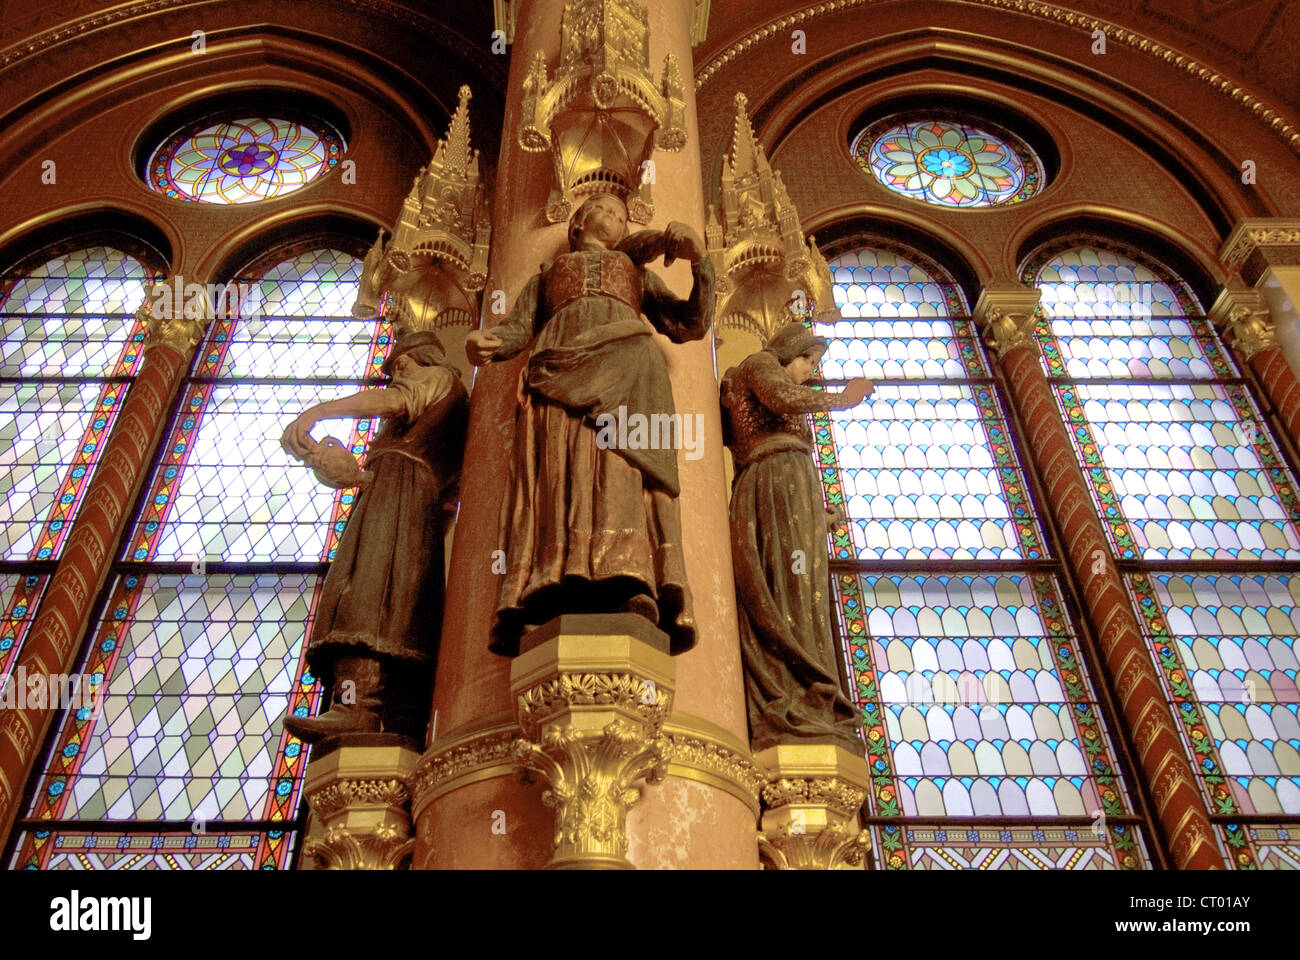 Interior Detail Of The House Of Parliament, Built In Neo Gothic Style,  Danube River Embankment In Budapest, Hungary